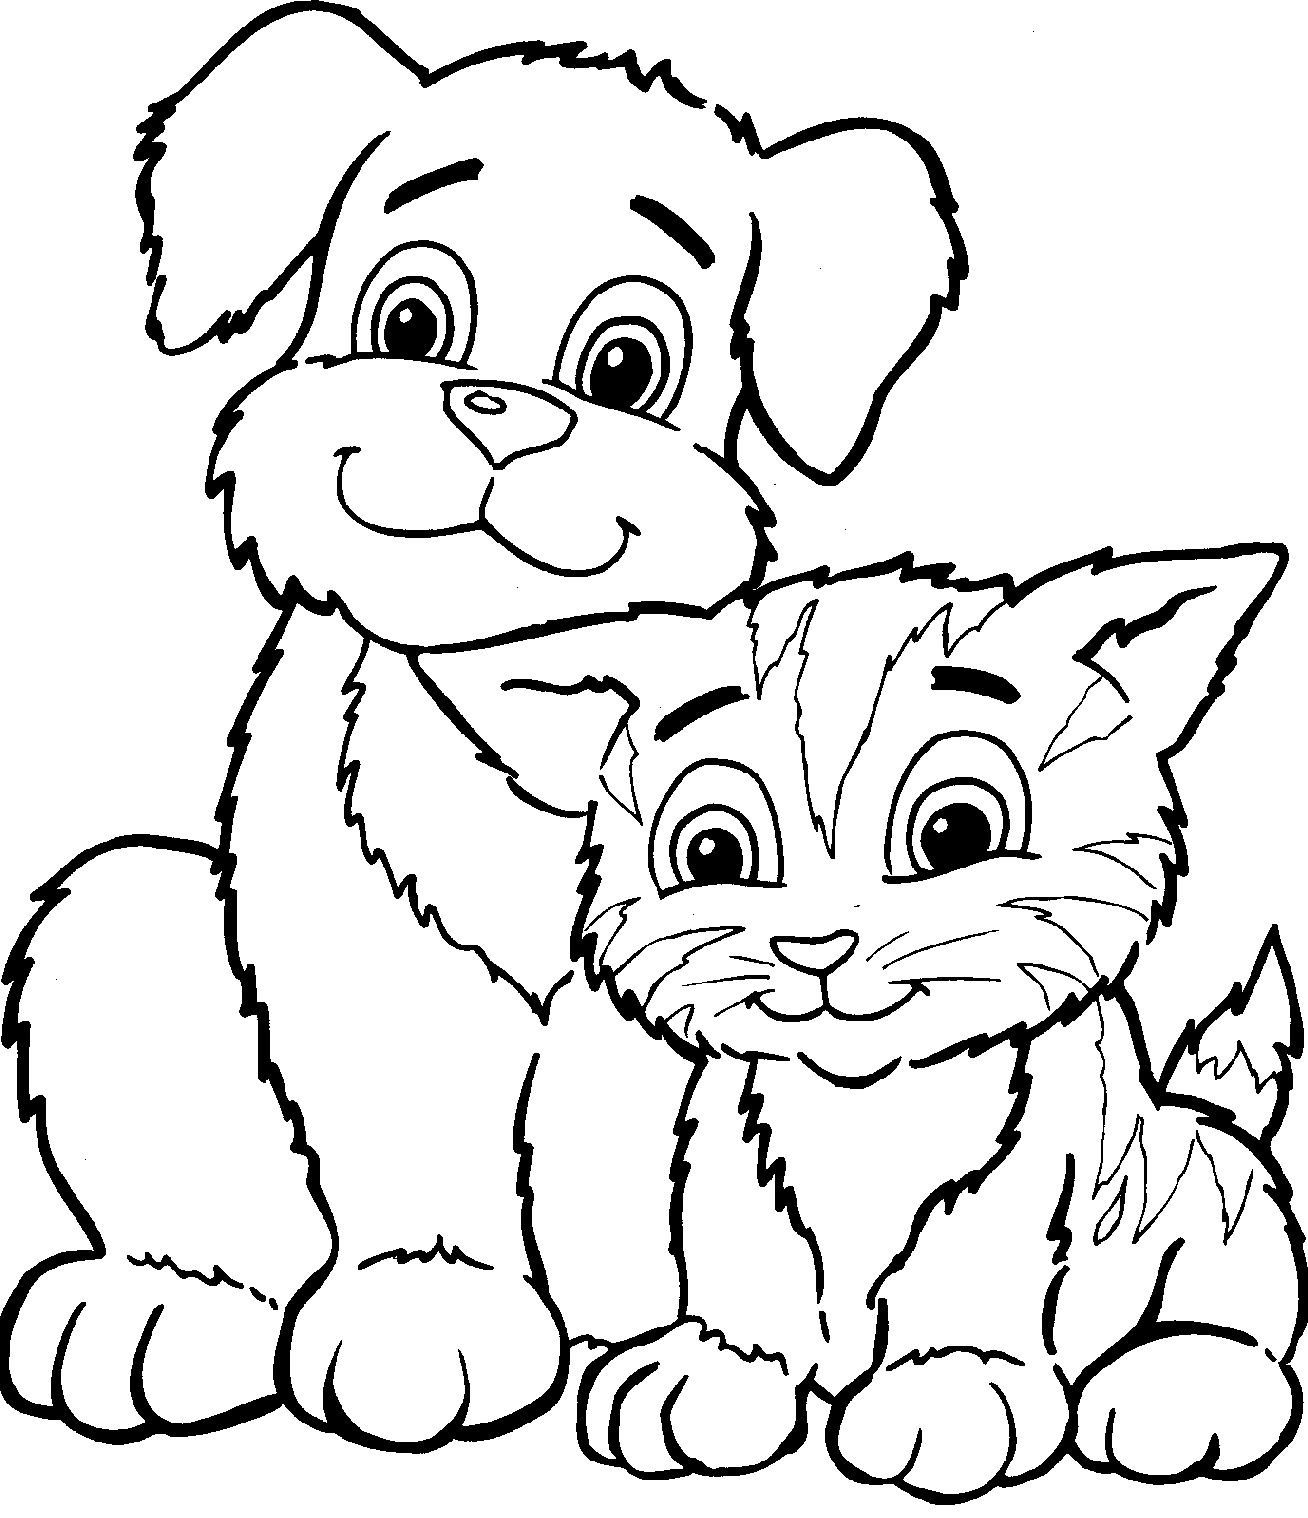 Puppies And Kittens Cute Coloring Pages Puppy Coloring Pages Animal Coloring Pages Dog Coloring Page